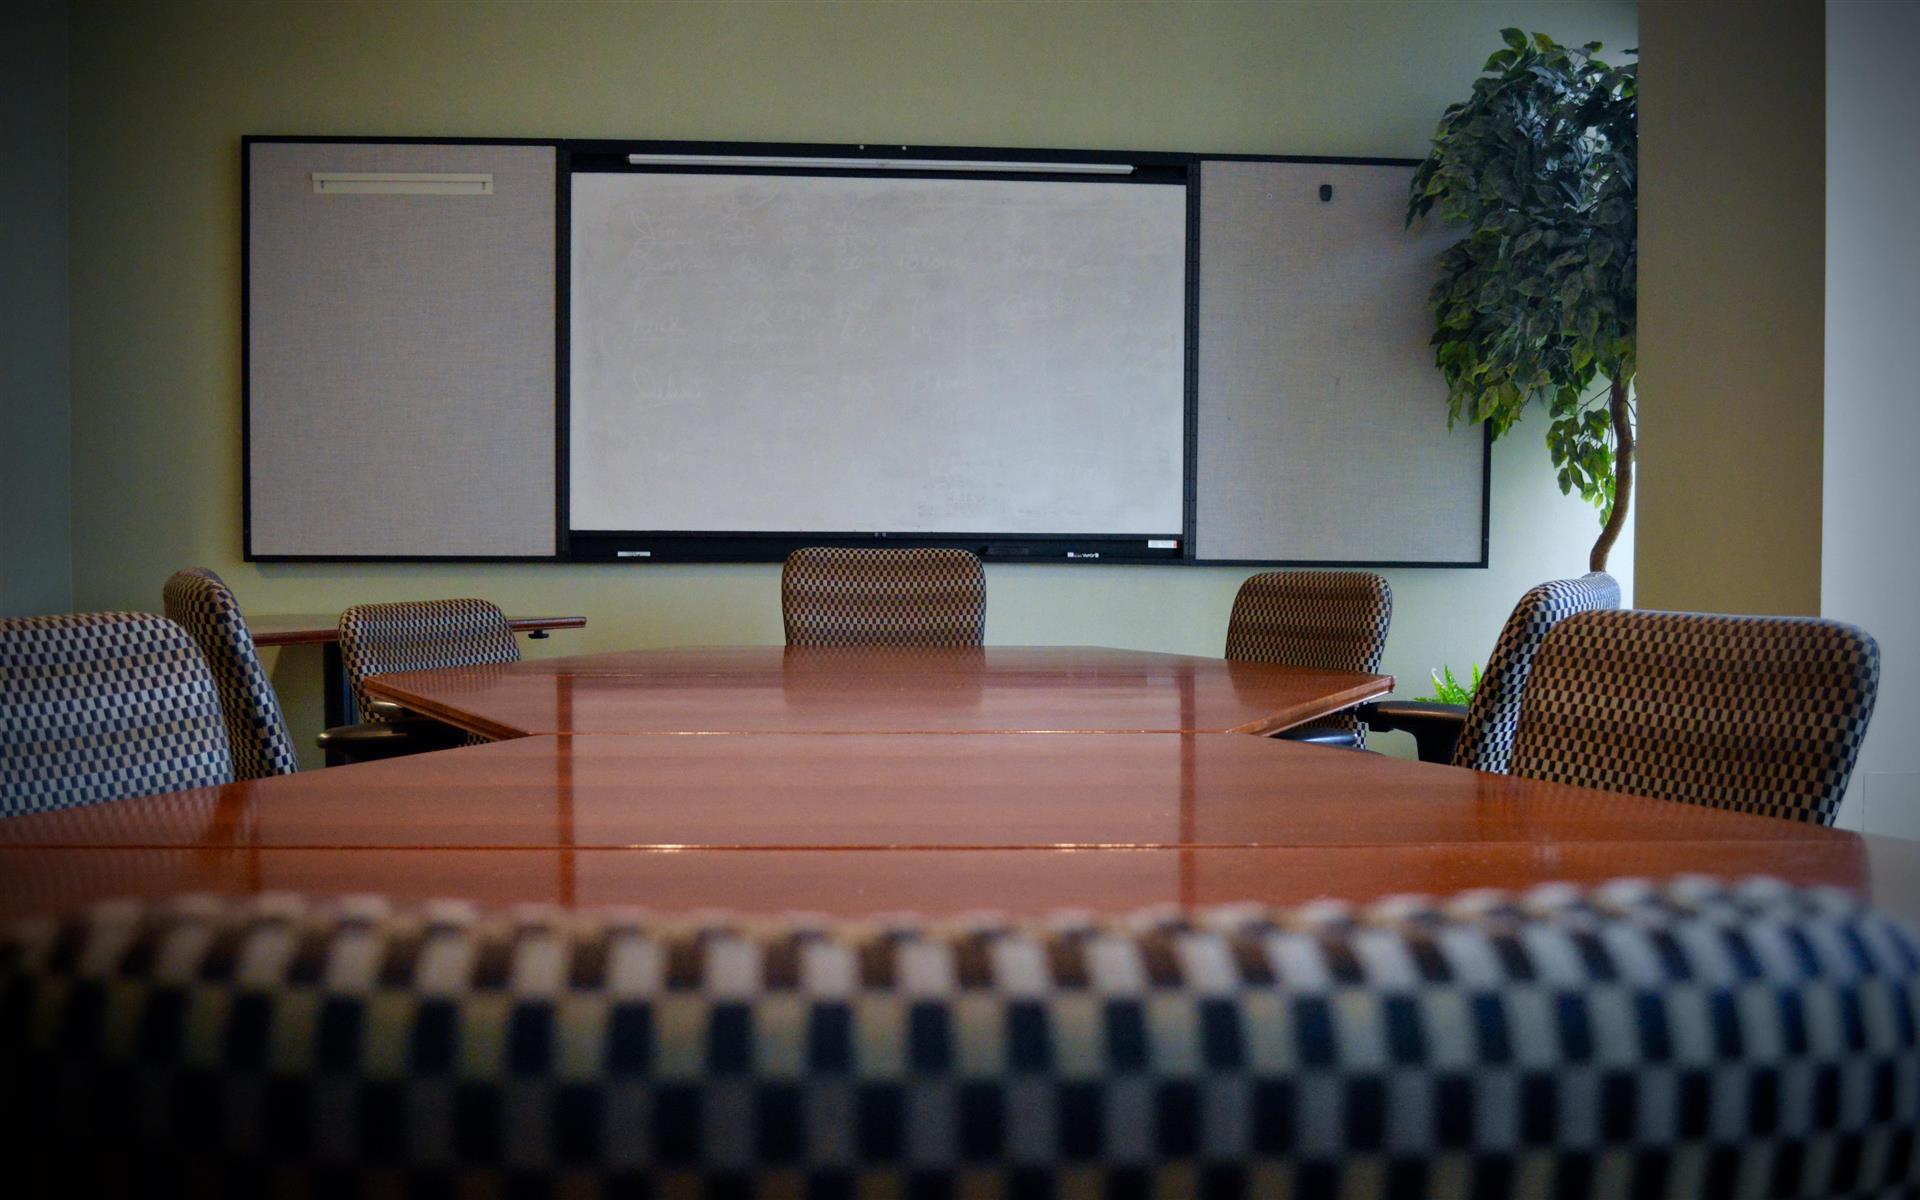 SearchPath Growth Center - Conference Room 2